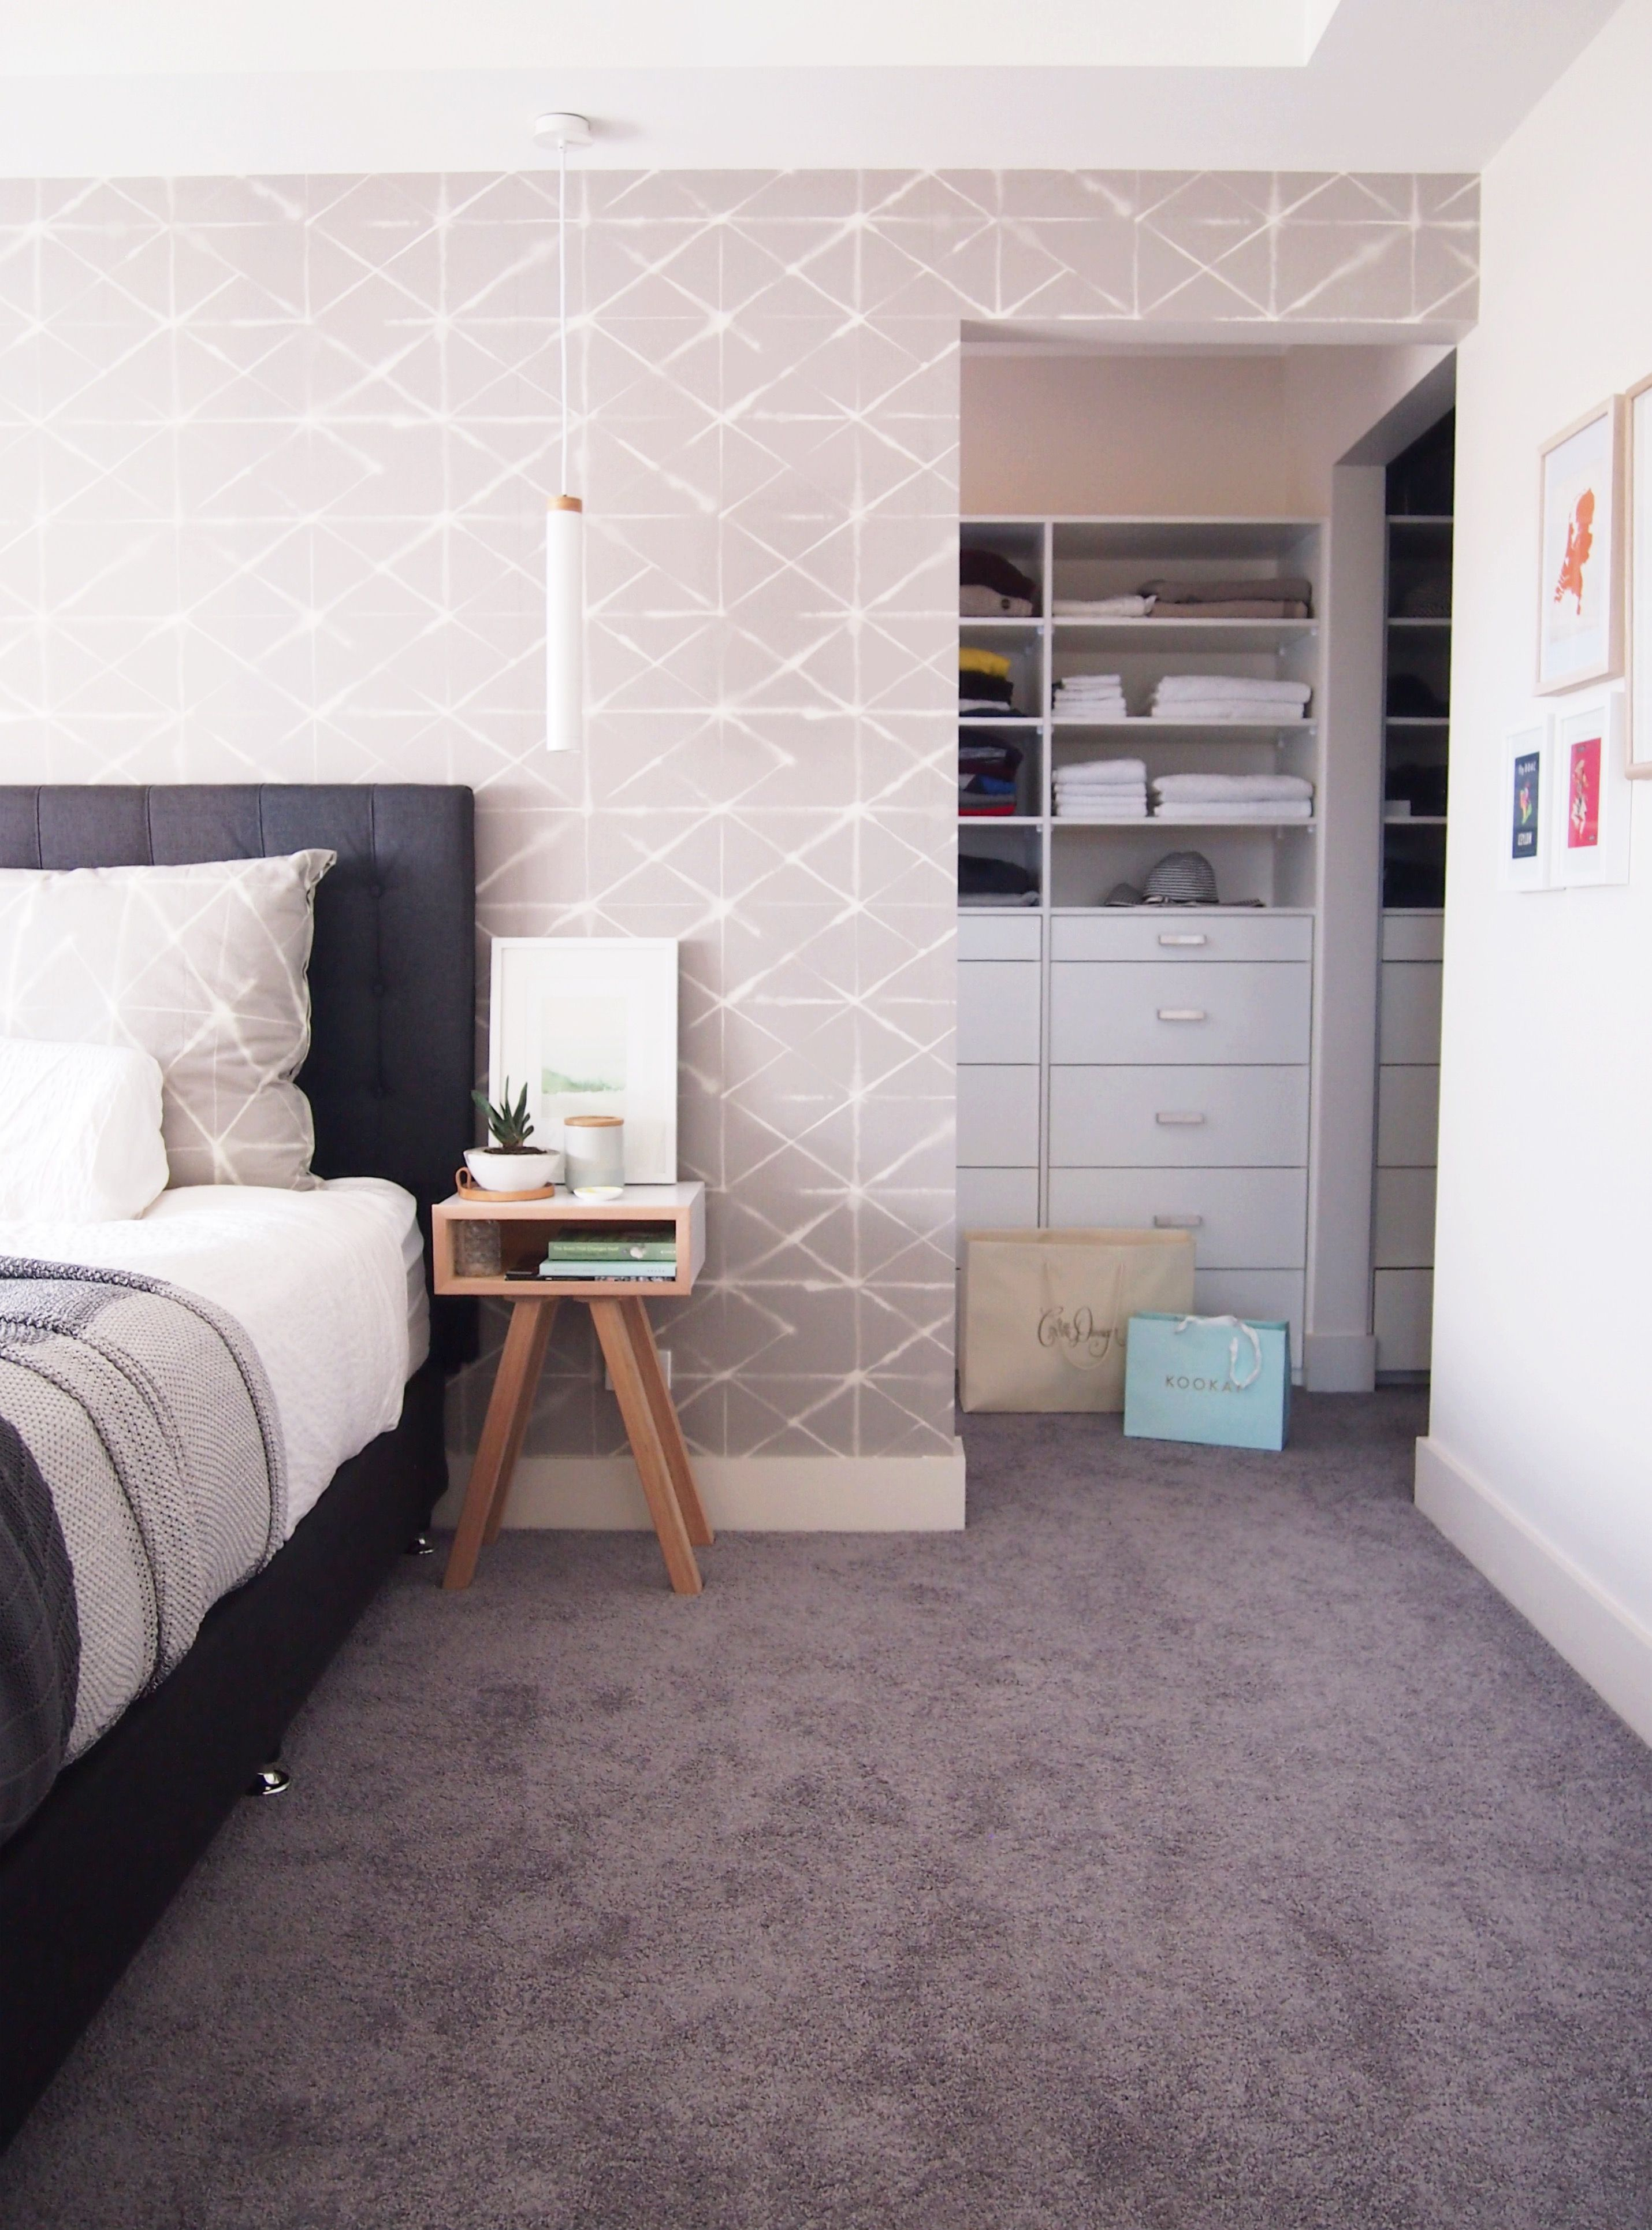 bedroom with custom wallpaper in scandinavian style walk in bedroom with custom wallpaper in scandinavian style walk in wardrobe and scandi bedside tables